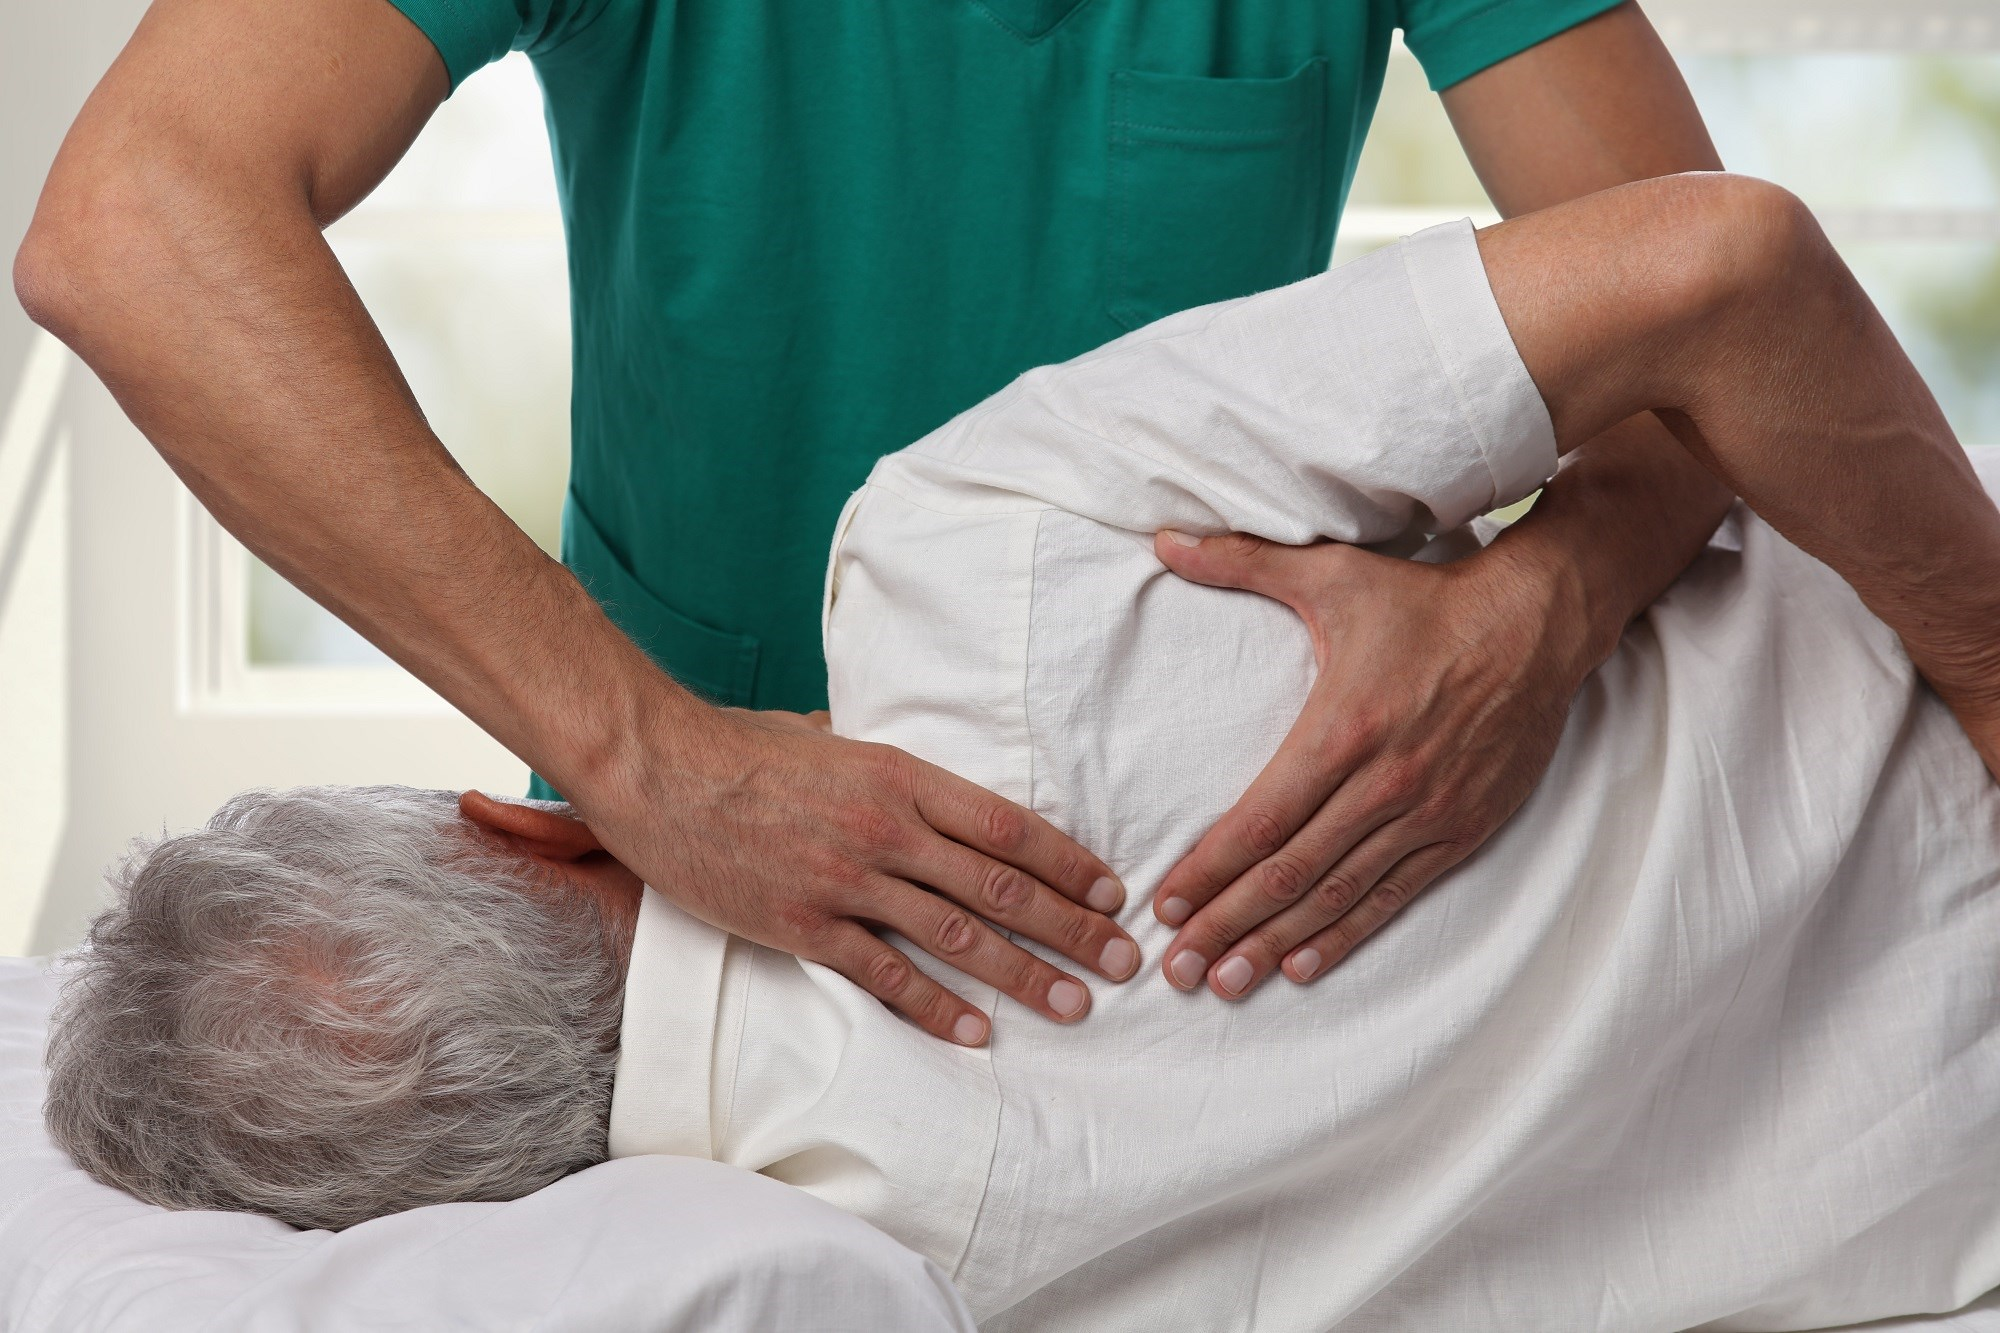 The mean healthcare costs were found to be lower in patients receiving manual therapy alone vs in combination with opioids.